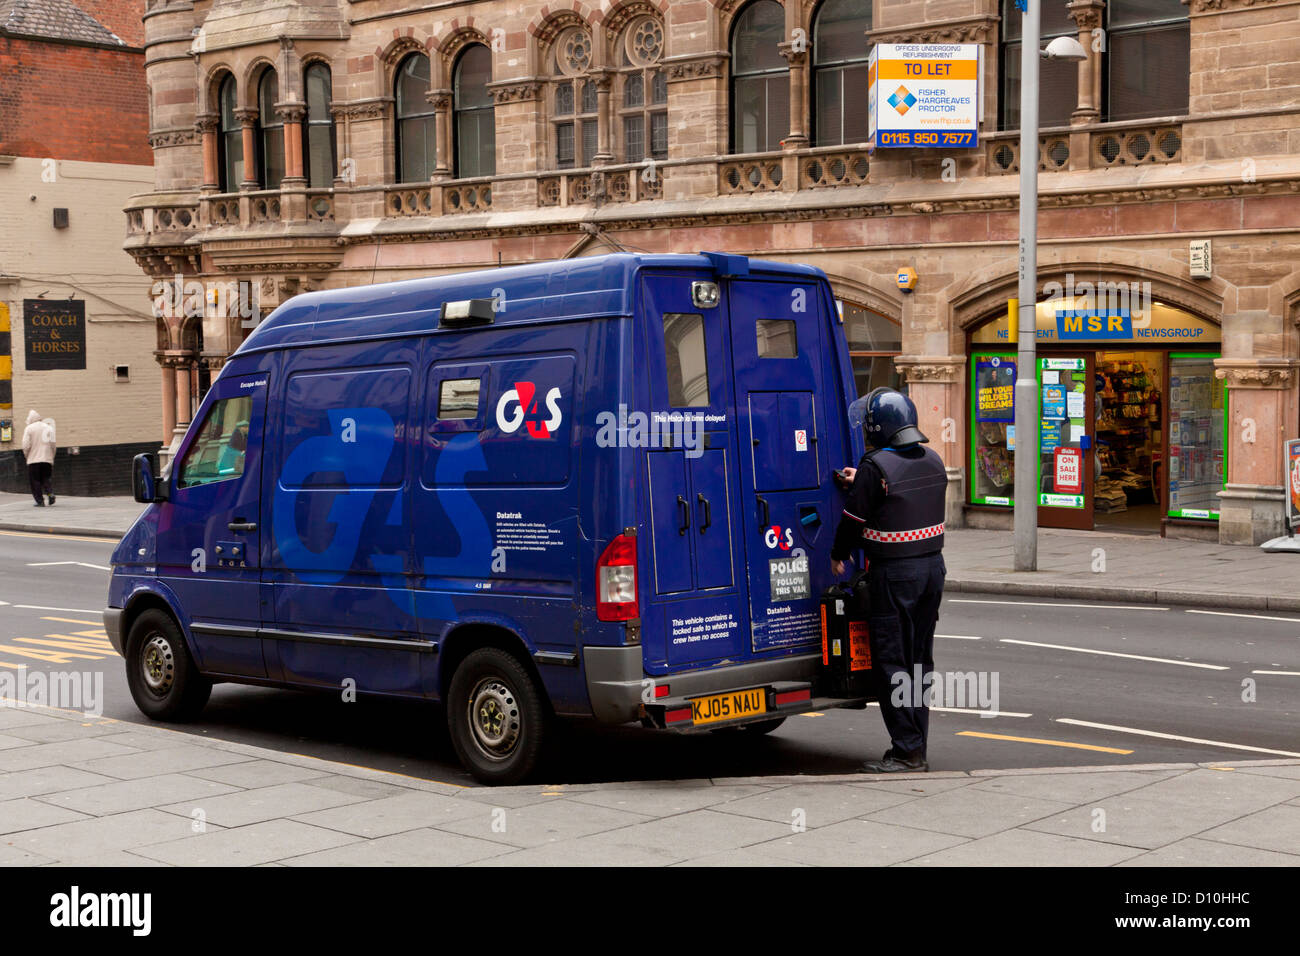 a5dfd82209 G4s Stock Photos   G4s Stock Images - Alamy